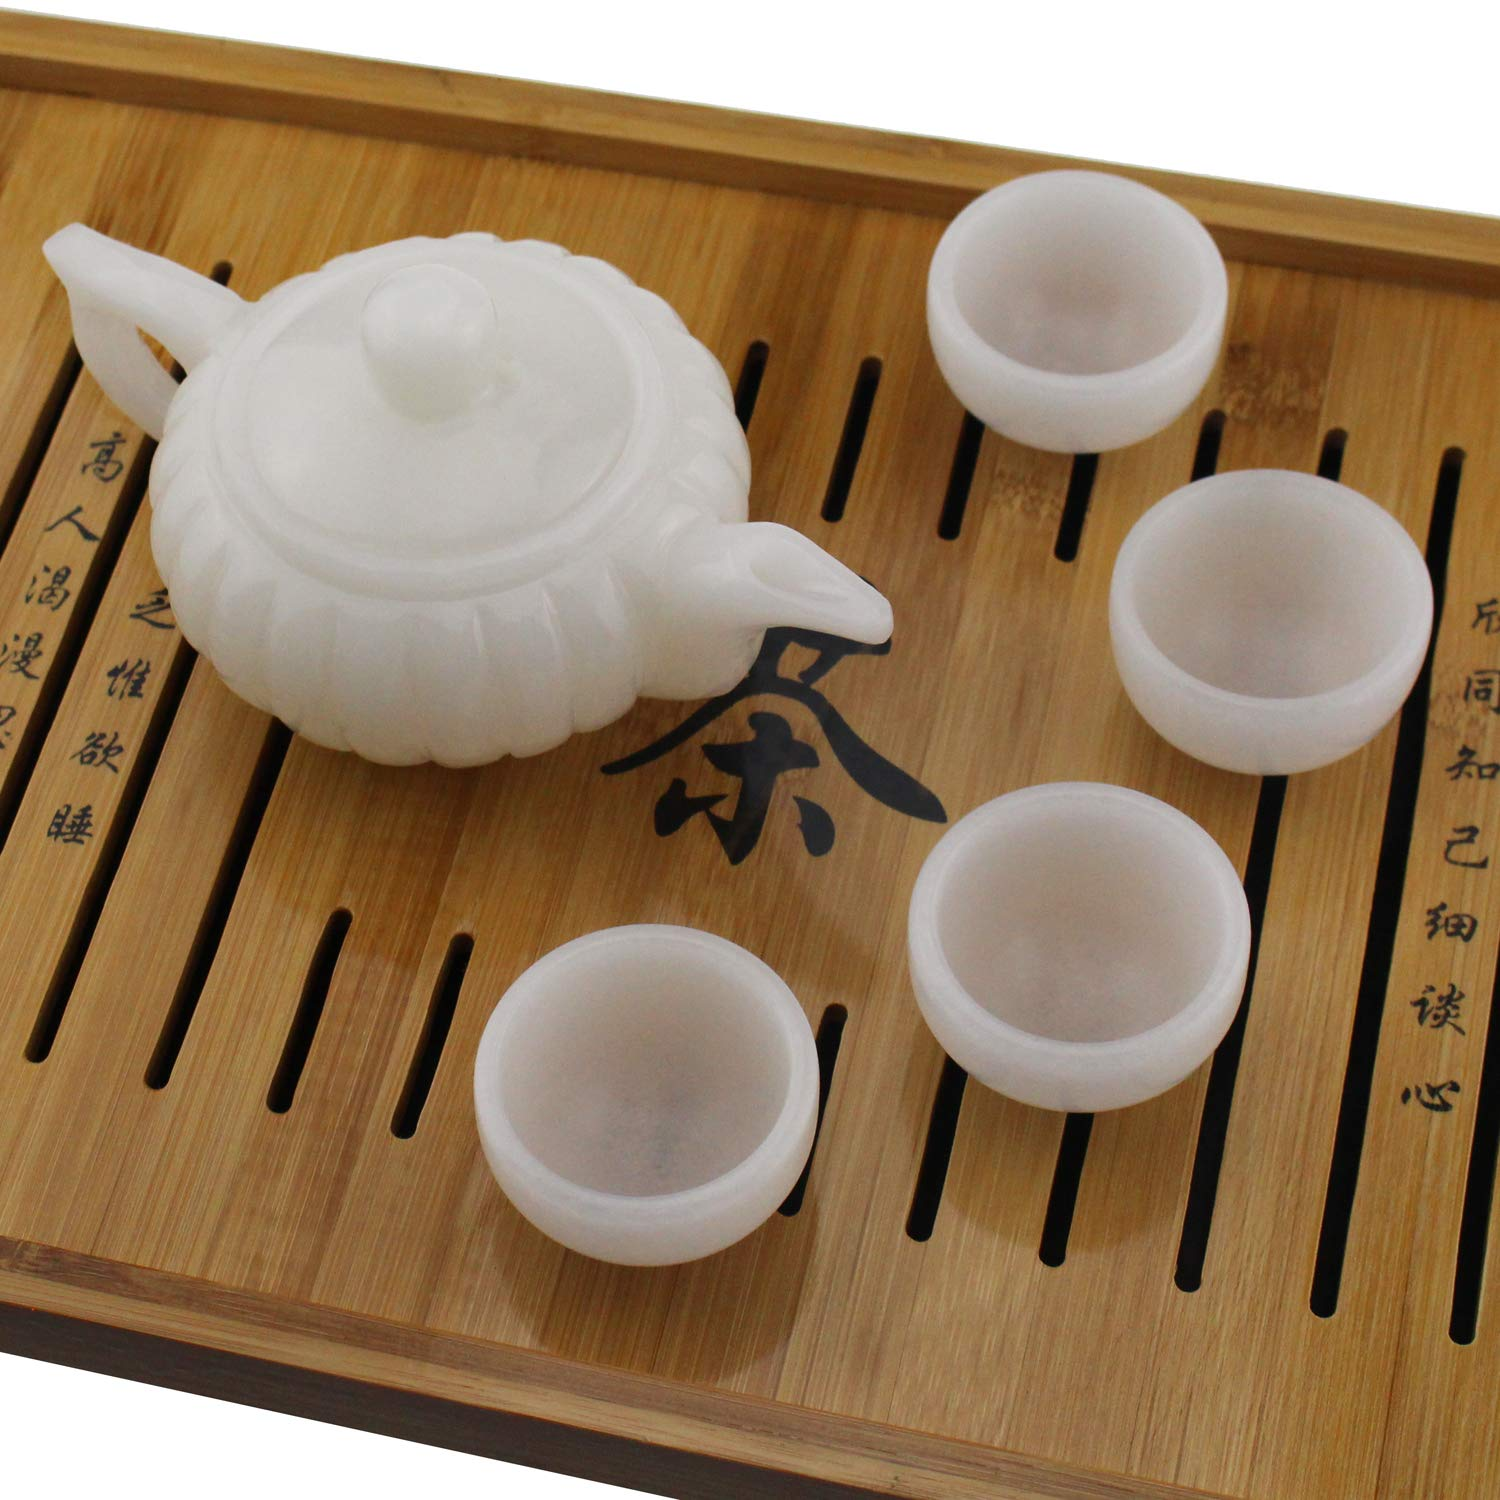 Tipmant Chinese Tea Set Nature Afghanistan White Jade Hand-carved (1 Teapot with 4 Teacups)